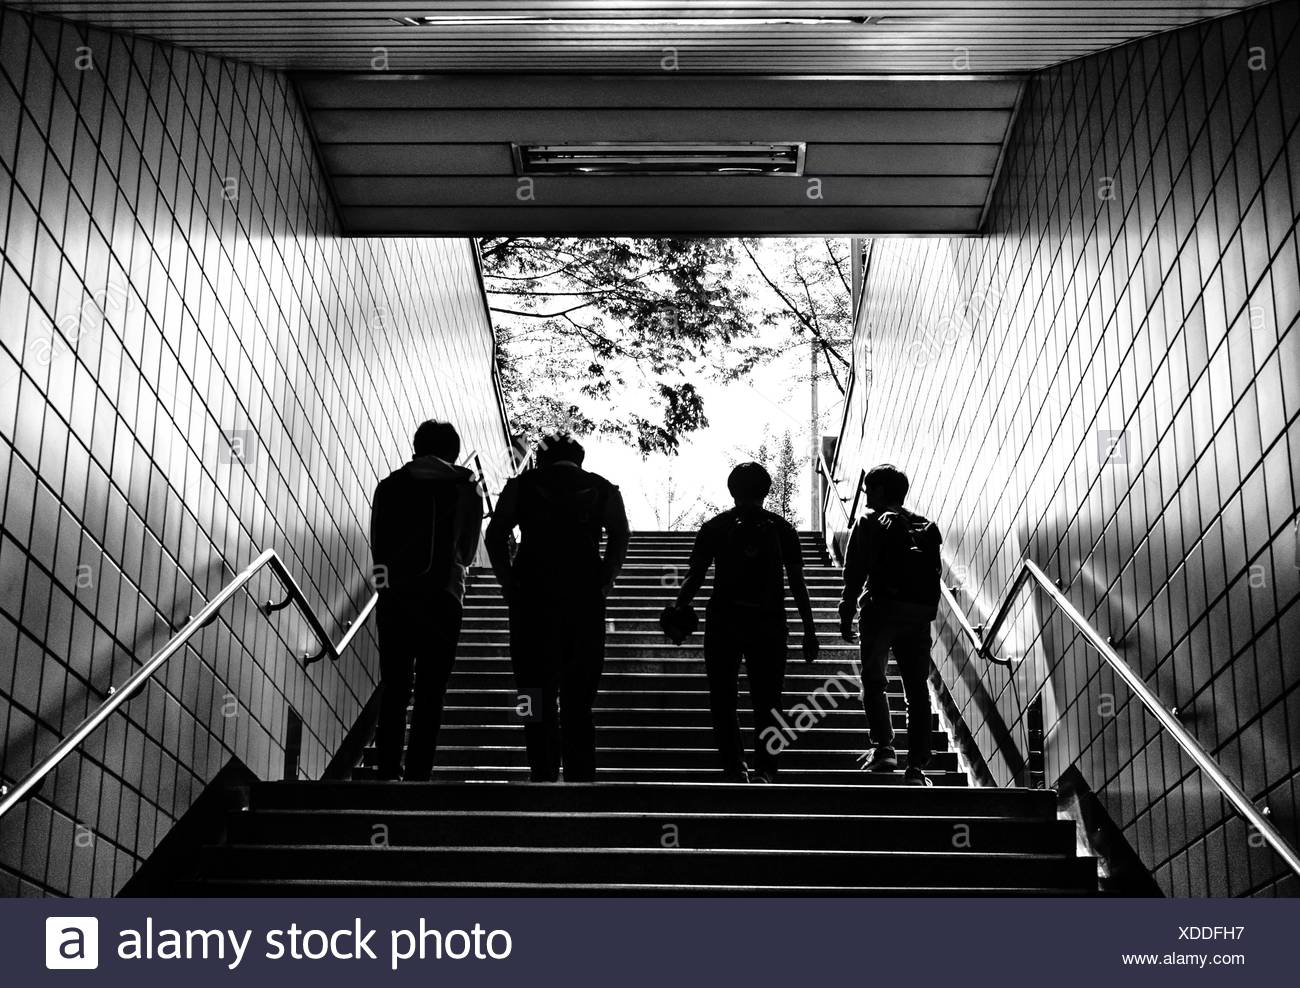 Rear View Of Silhouette People Walking On Staircase In Subway Stock Photo